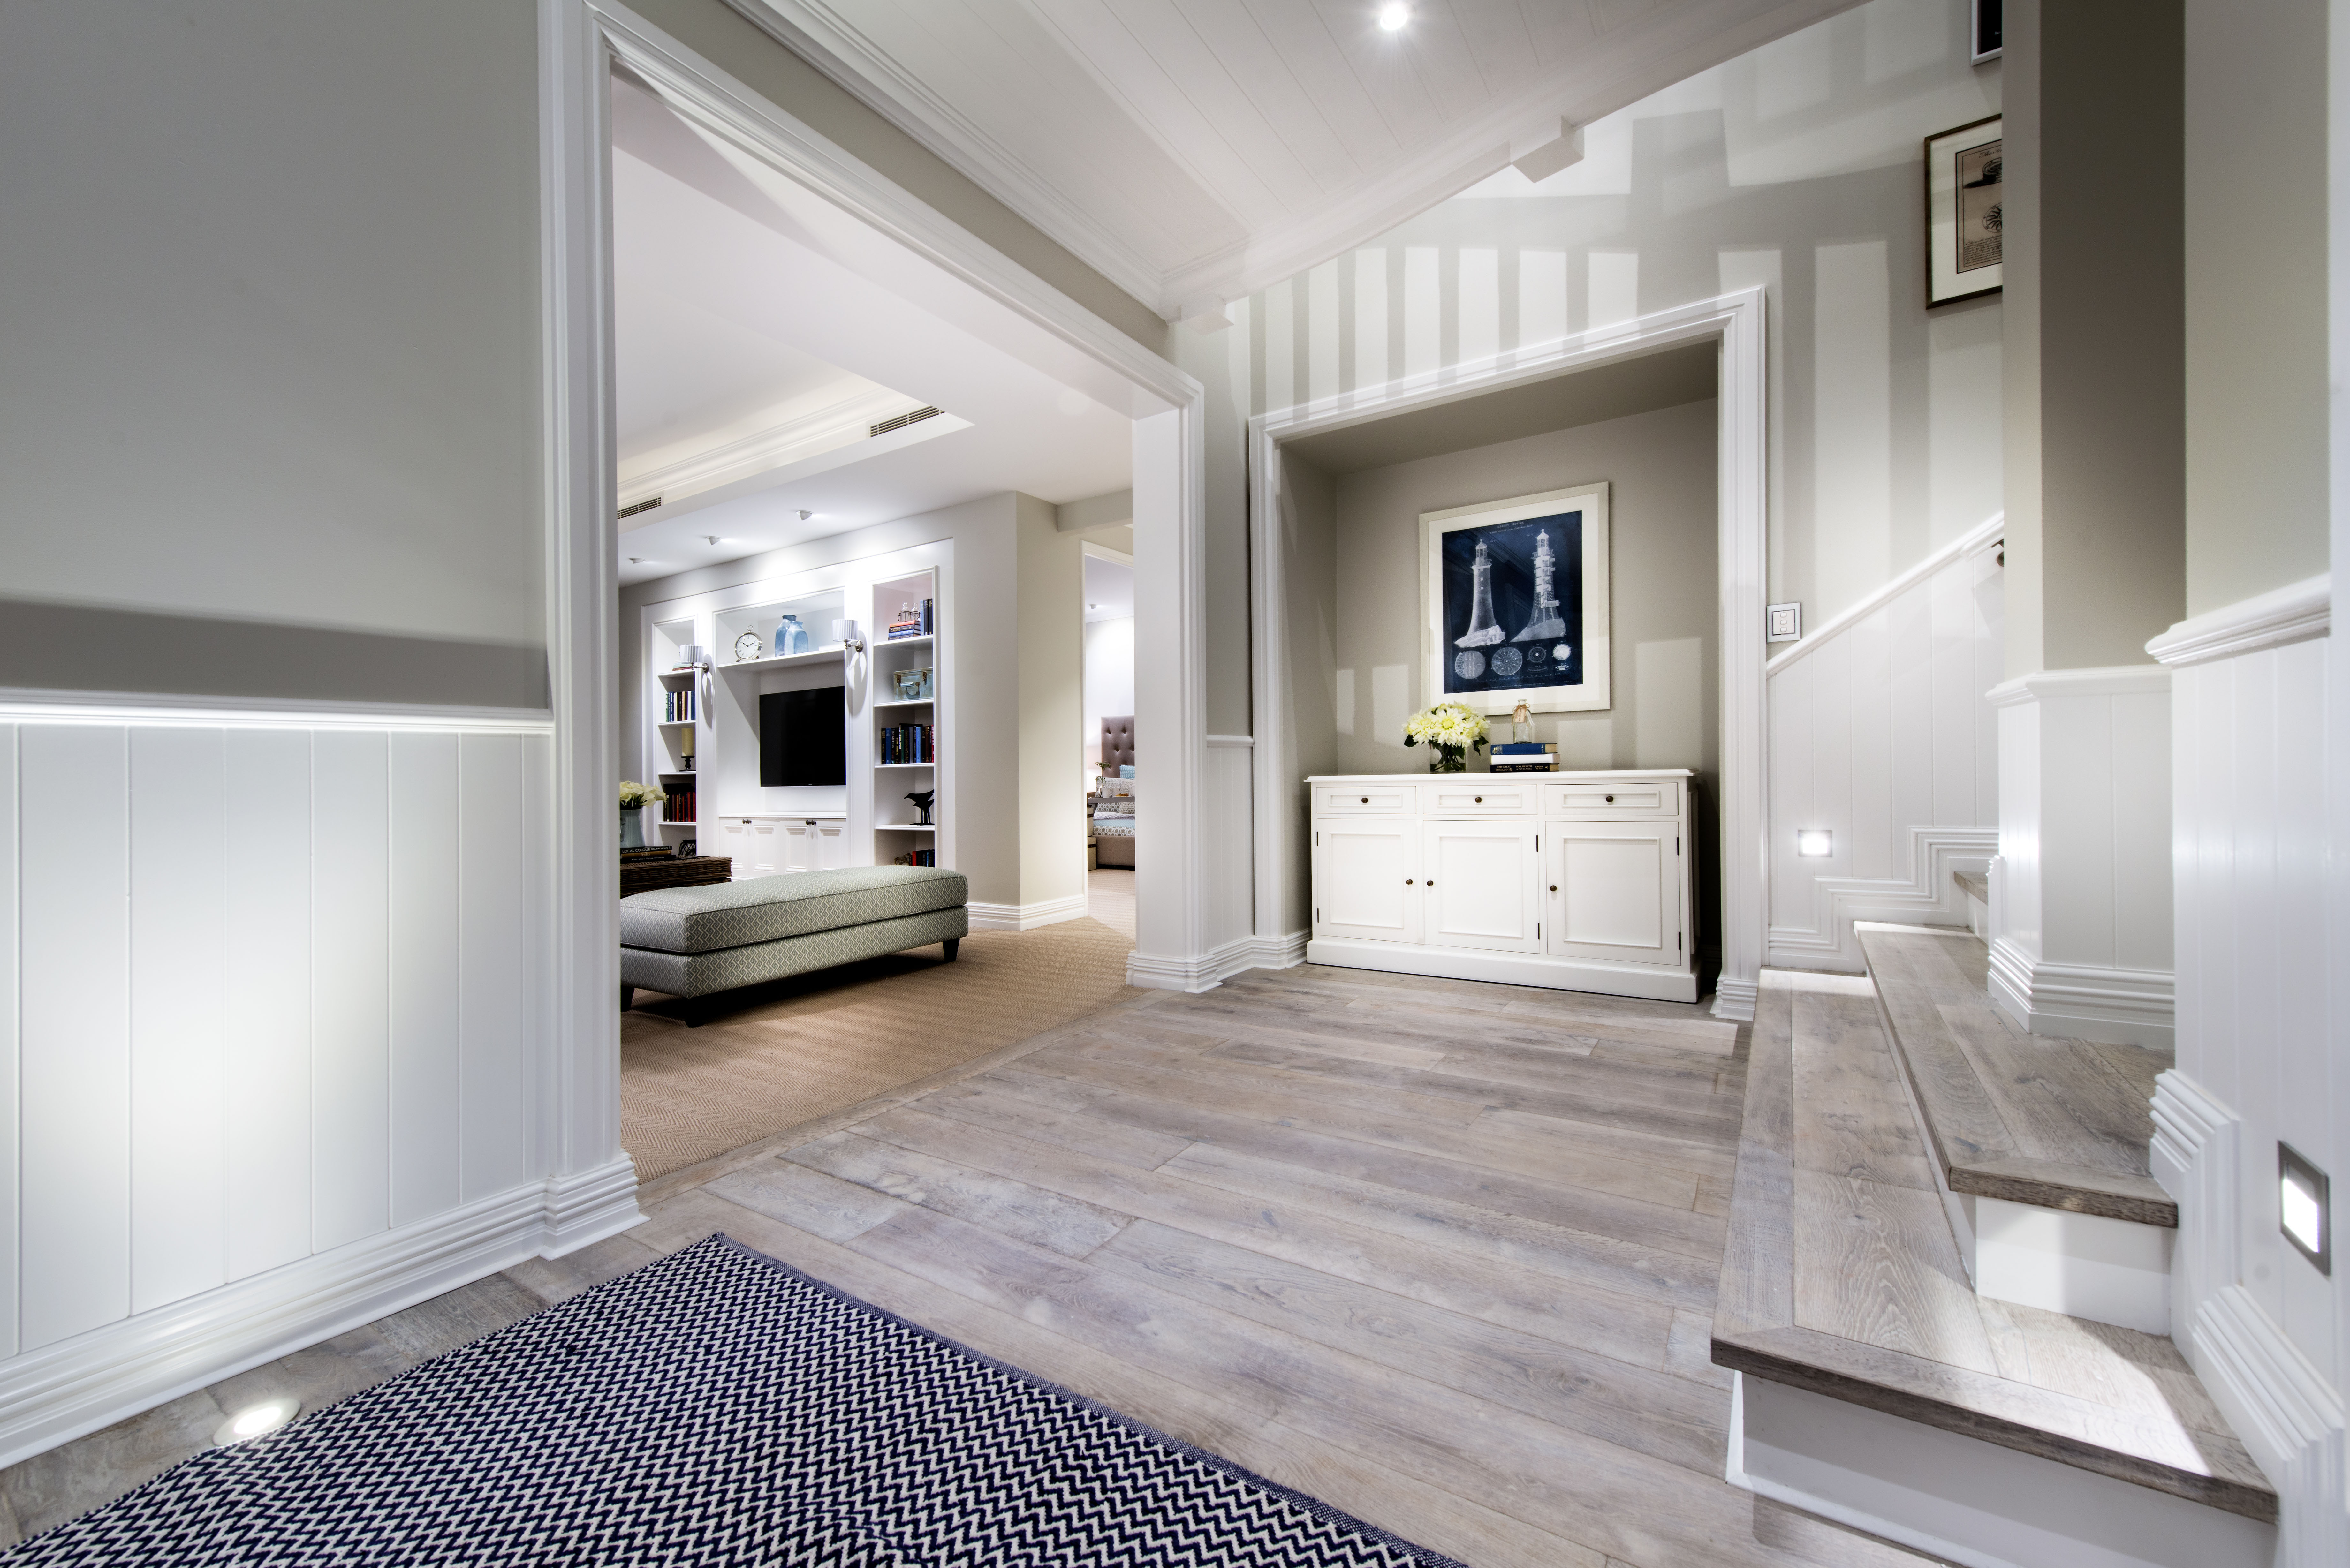 imple rug marks the entryway to the home. Set into a former closet is a white buffet for storage. To the right, stairs lead up to the second floor and the main living area. To the left, the family room is visible. The walls are light olive with white wainscoting.